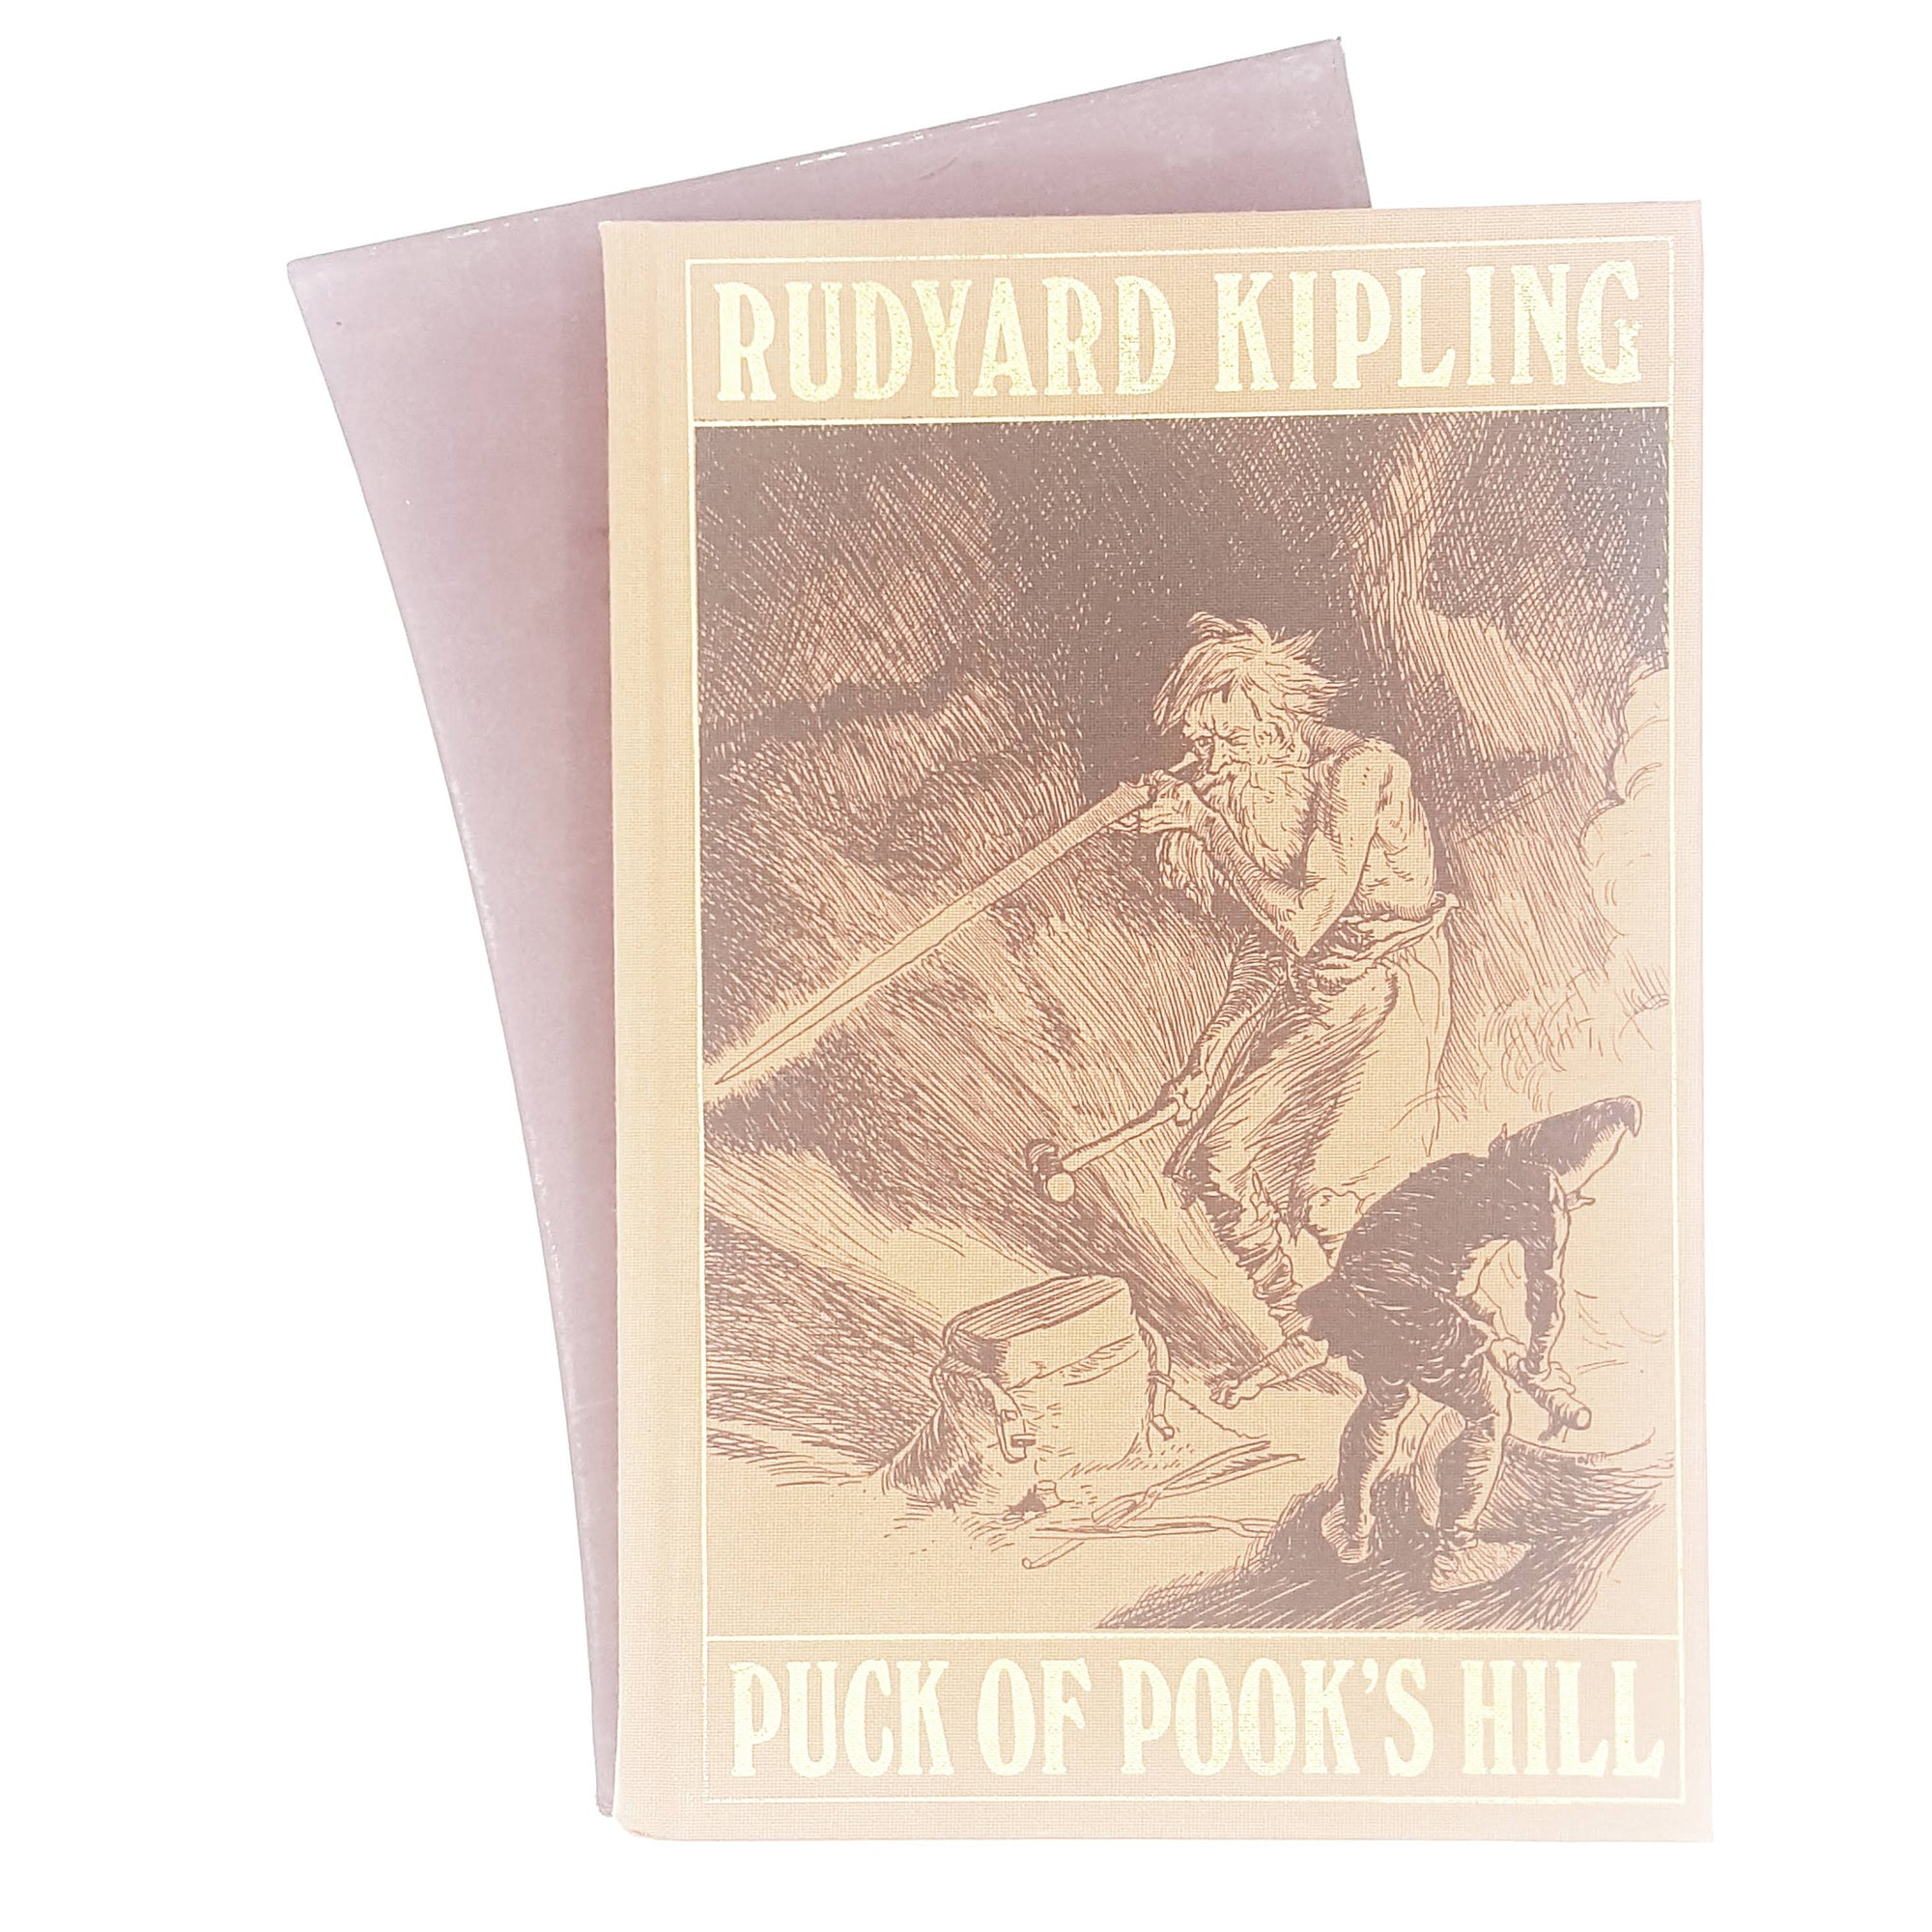 First Edition Rudyard Kipling's Puck of Pook's Hill 1995